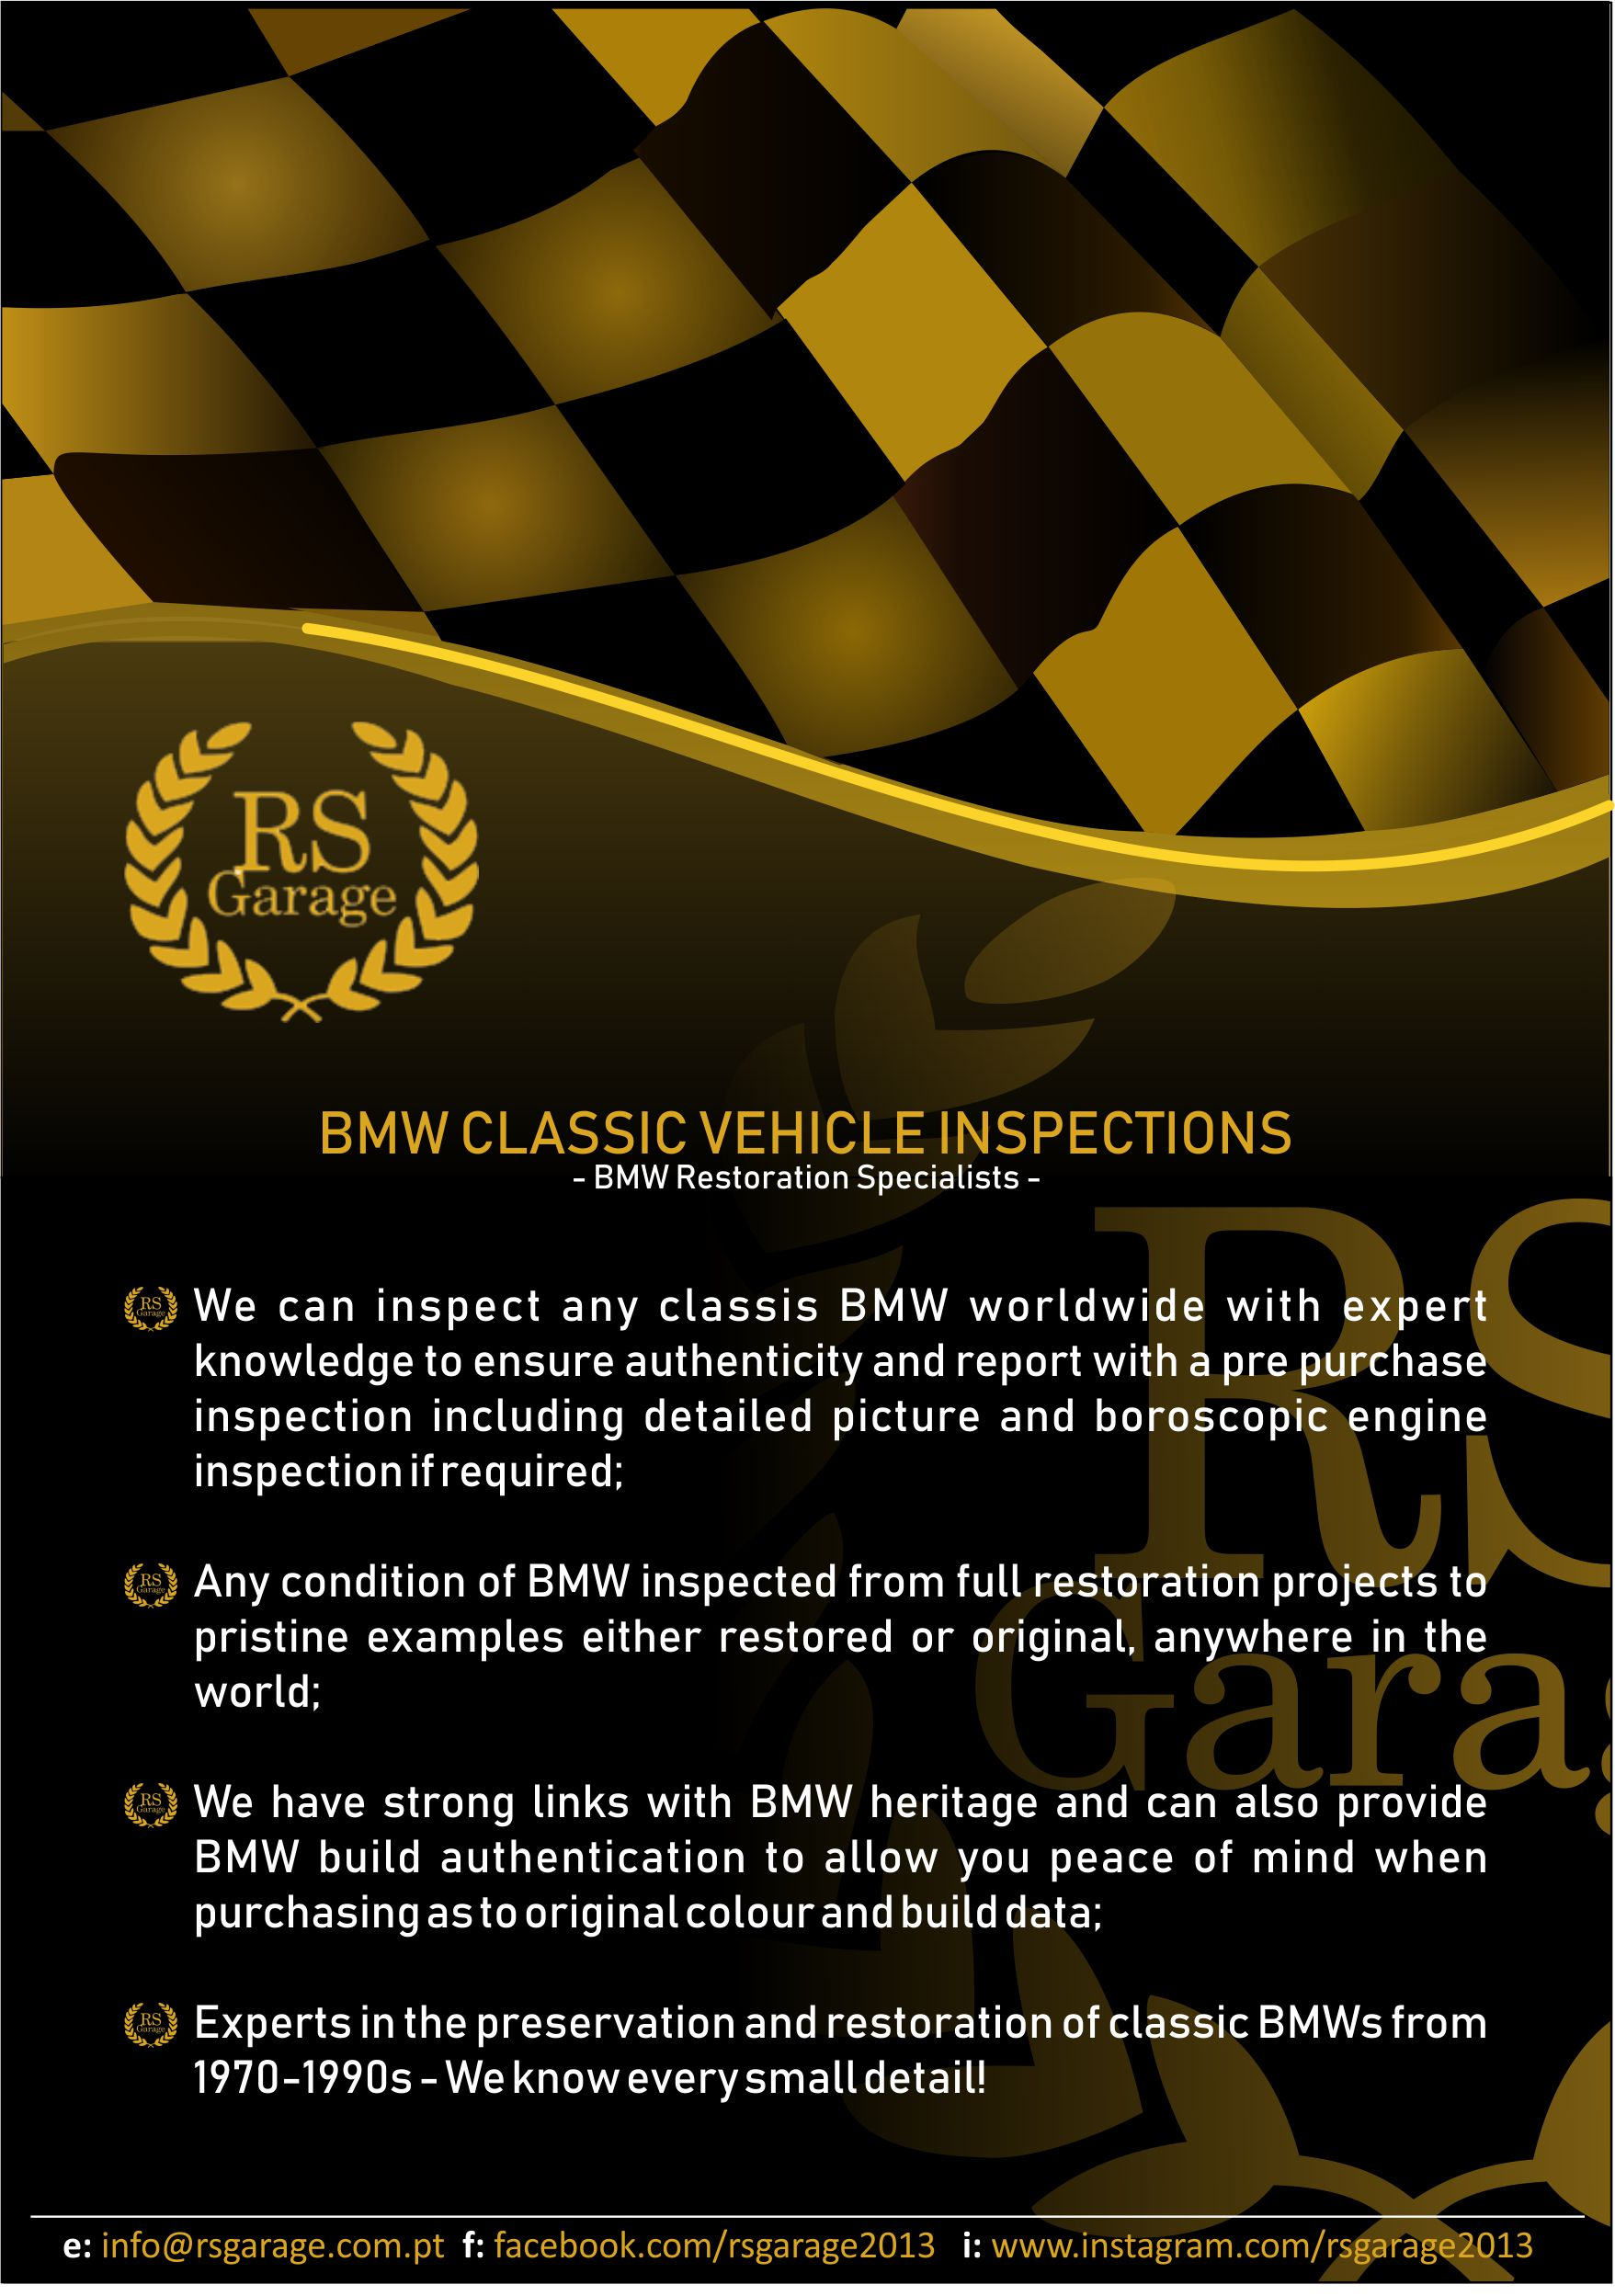 BMW Classics Vehicle Inspections